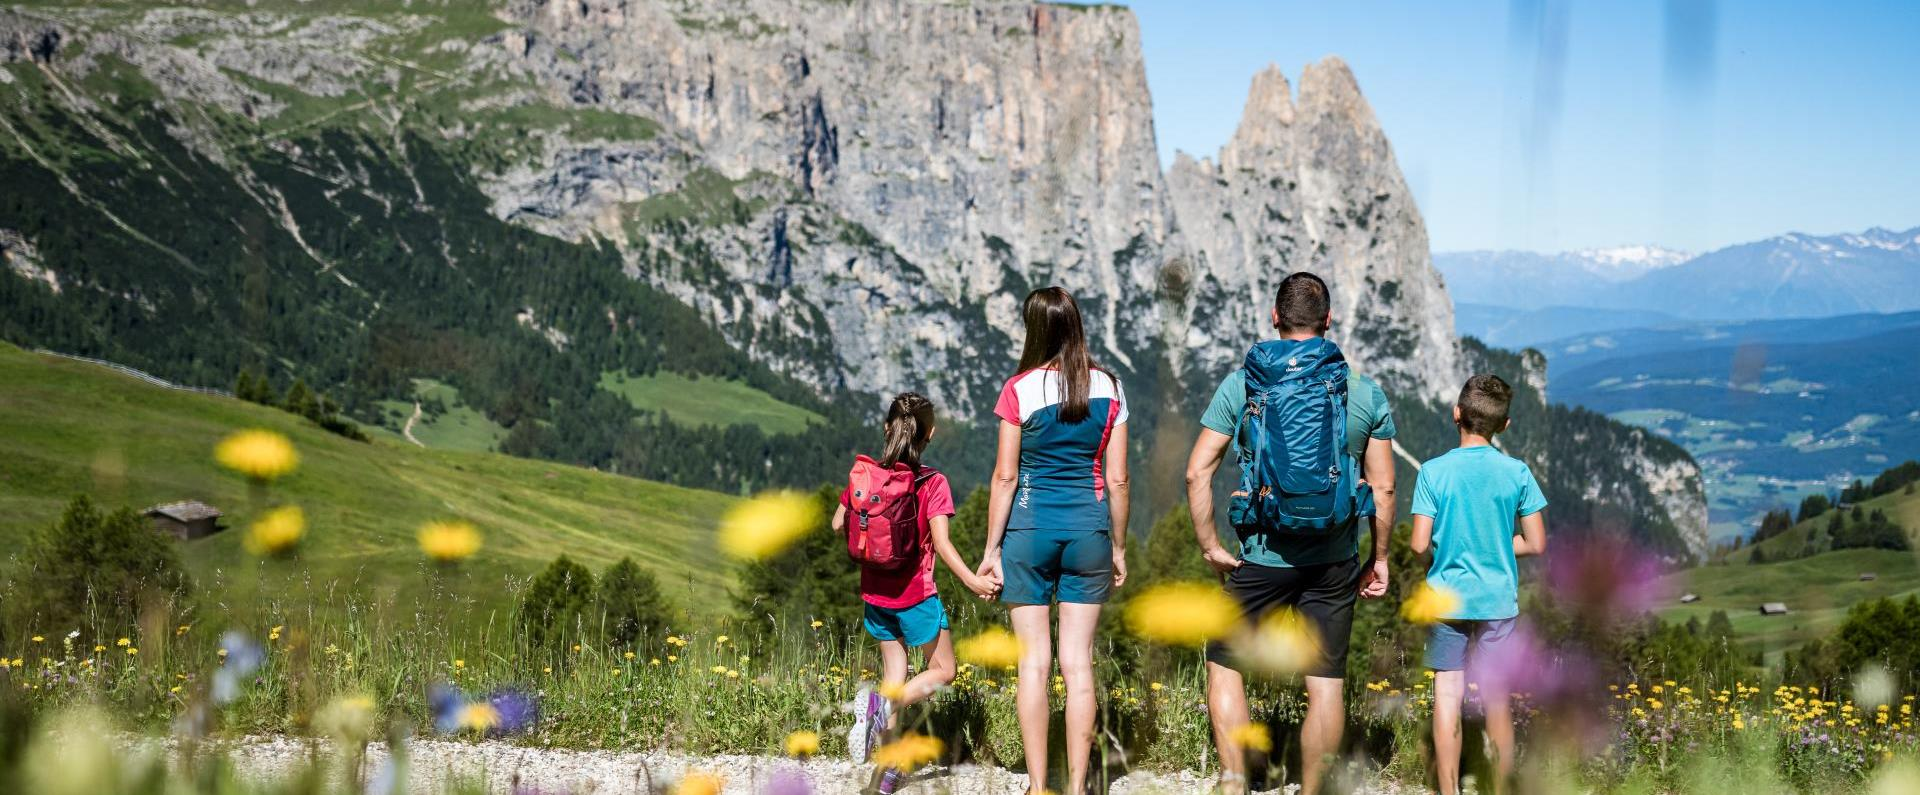 Adventure hiking and exploring with children on the Seiser Alm